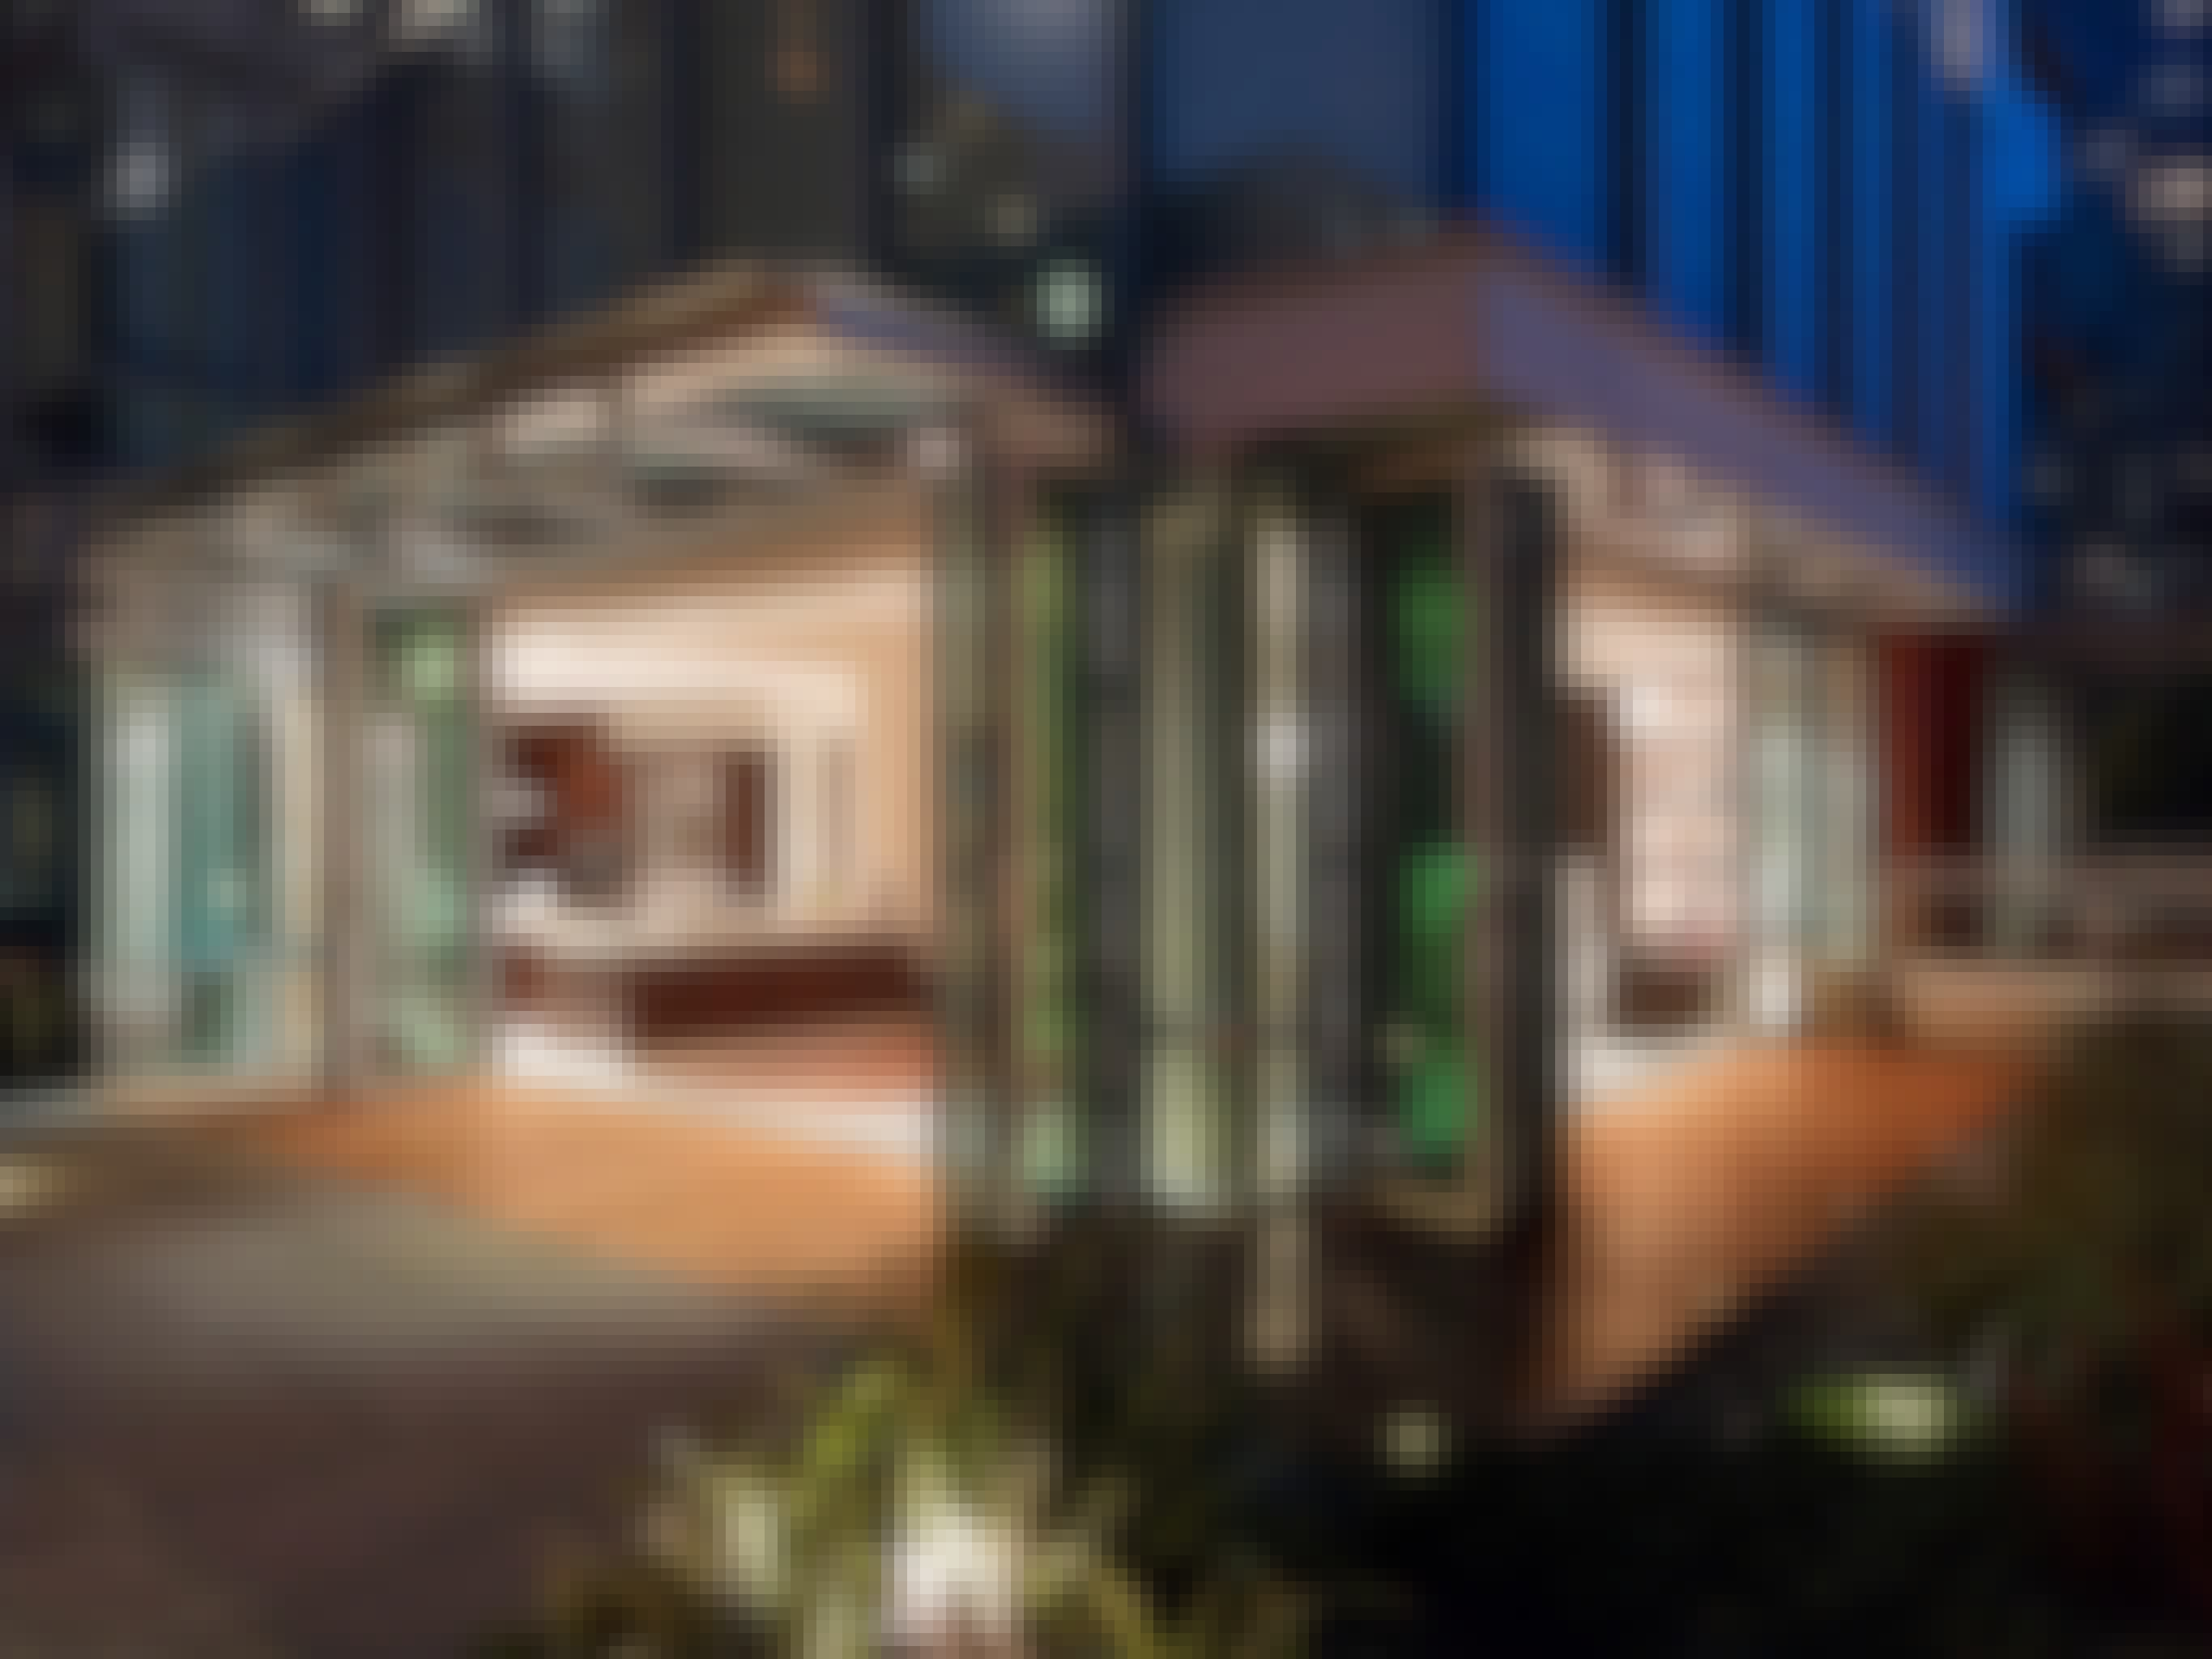 multifamily-amenity-floor-open-to-roof-at-night